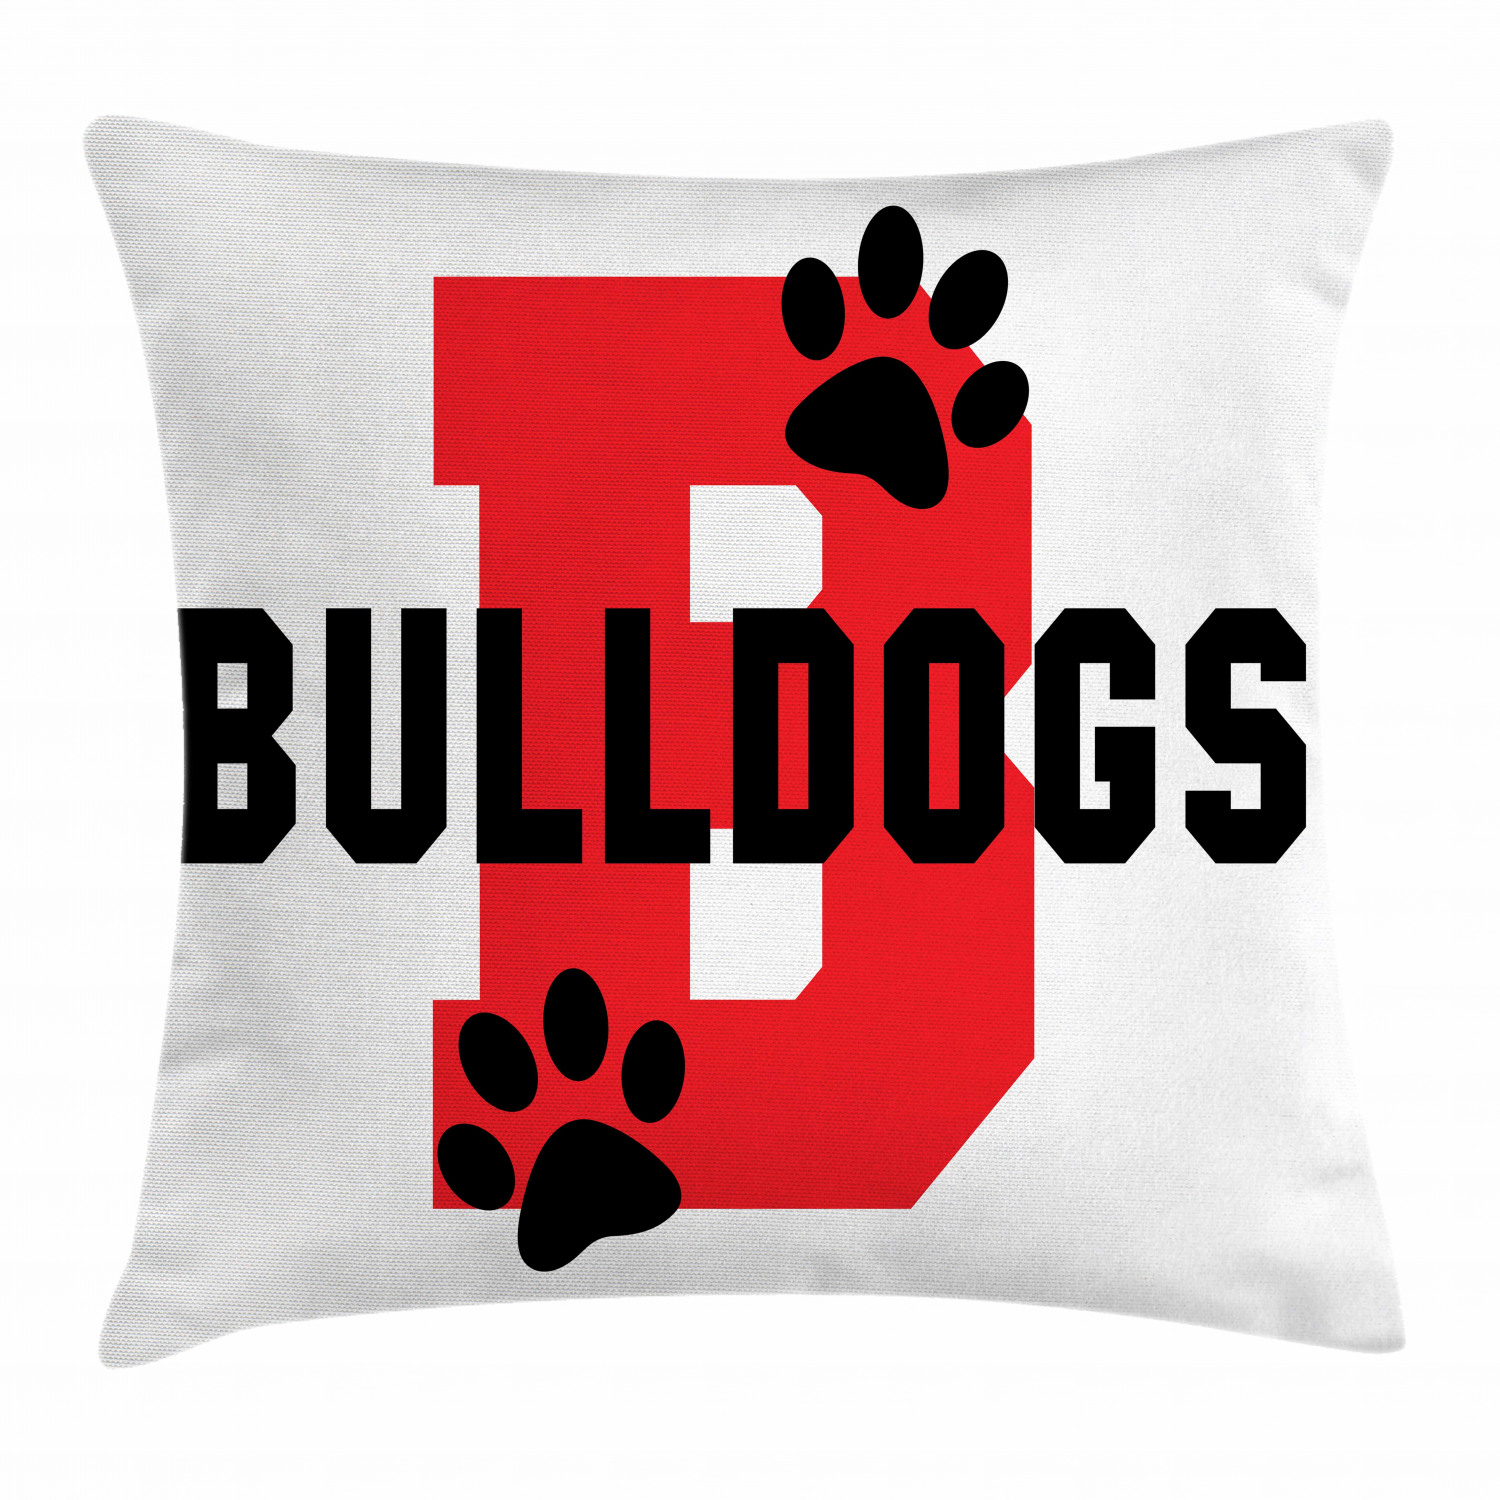 English Bulldog Throw Pillow Cushion Cover Paw Print Silhouette And Giant B Letter Background Custom Logo Design Decorative Square Accent Pillow Case 20 X 20 Inches Red Black White By Ambesonne